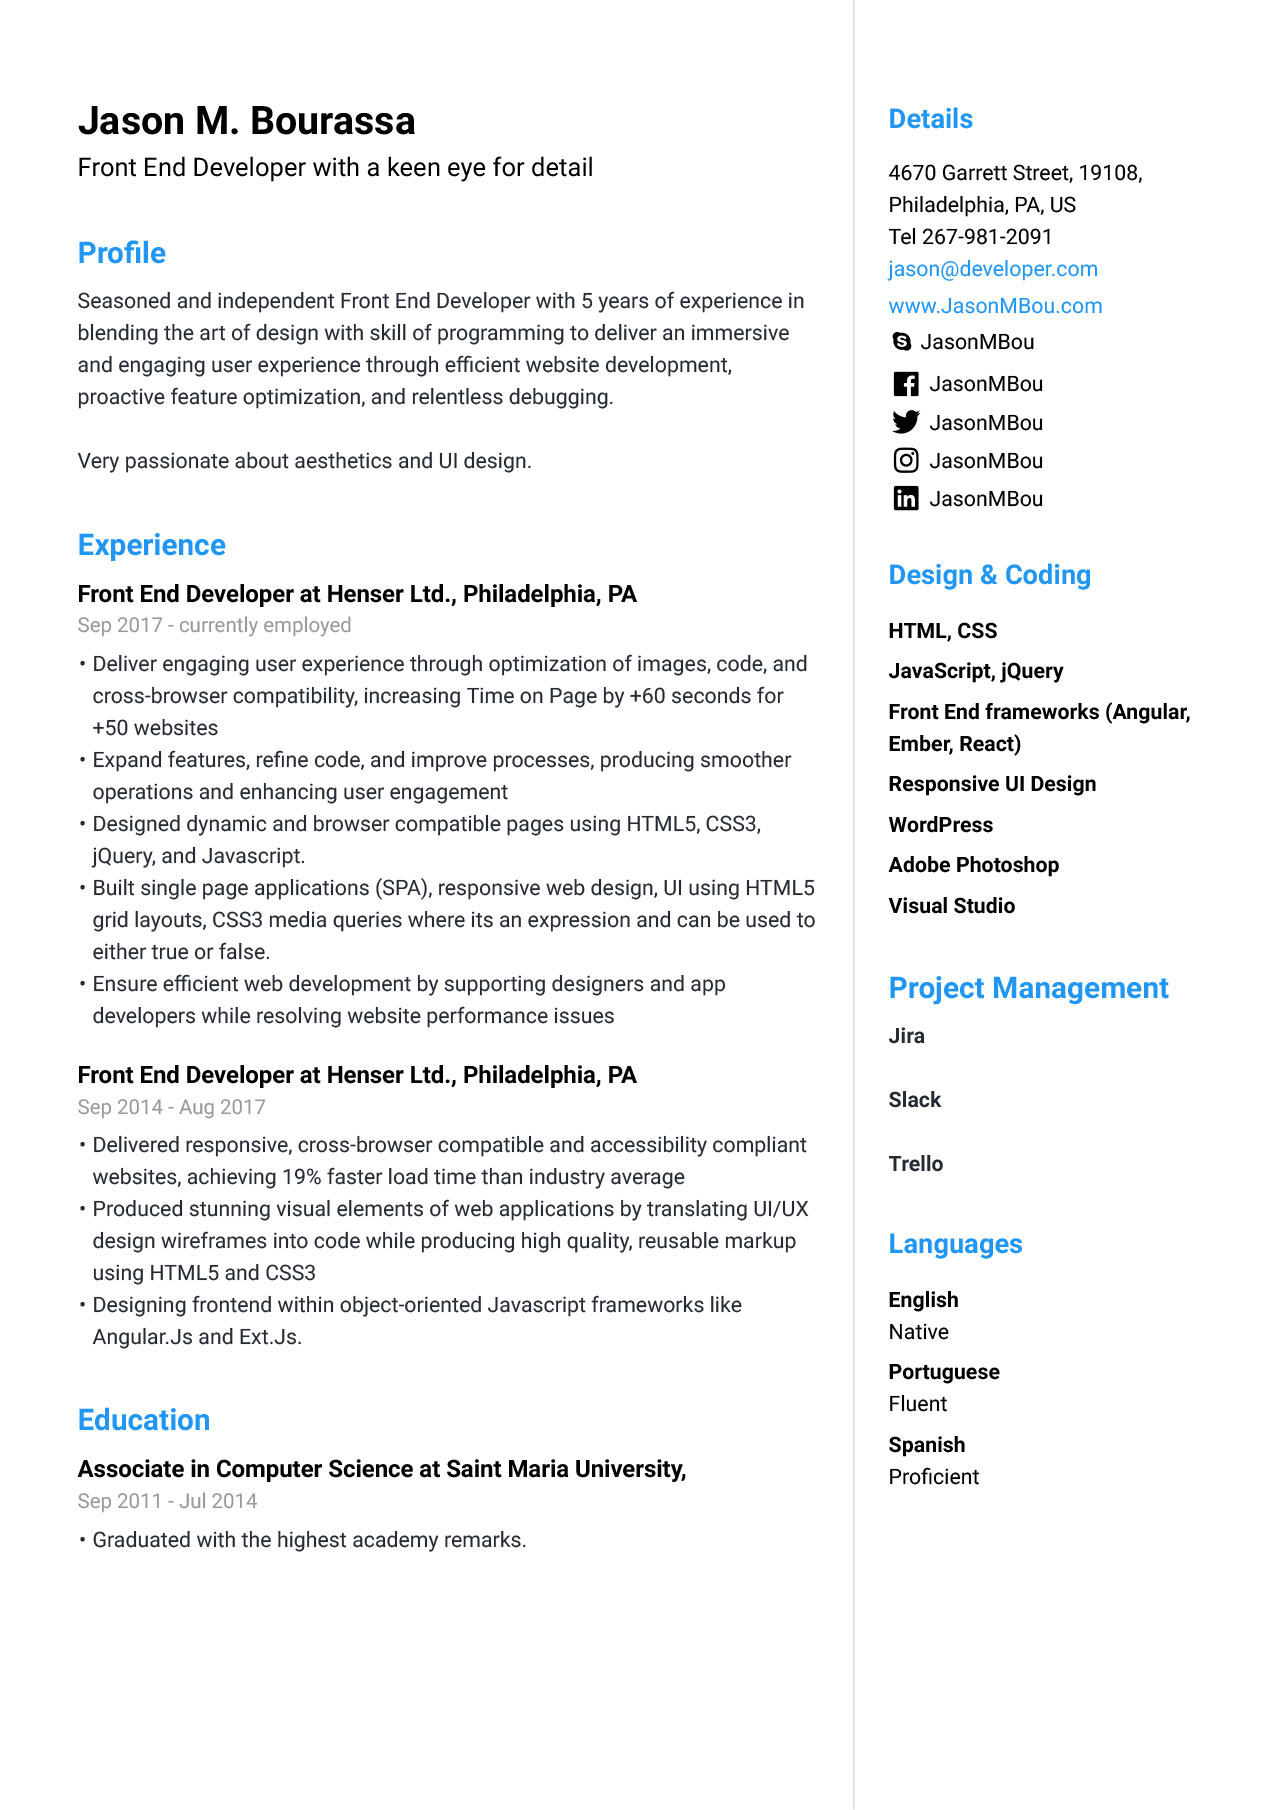 front end developer resume for example guide jofibo react native beowulf martial arts Resume React Native Resume Example